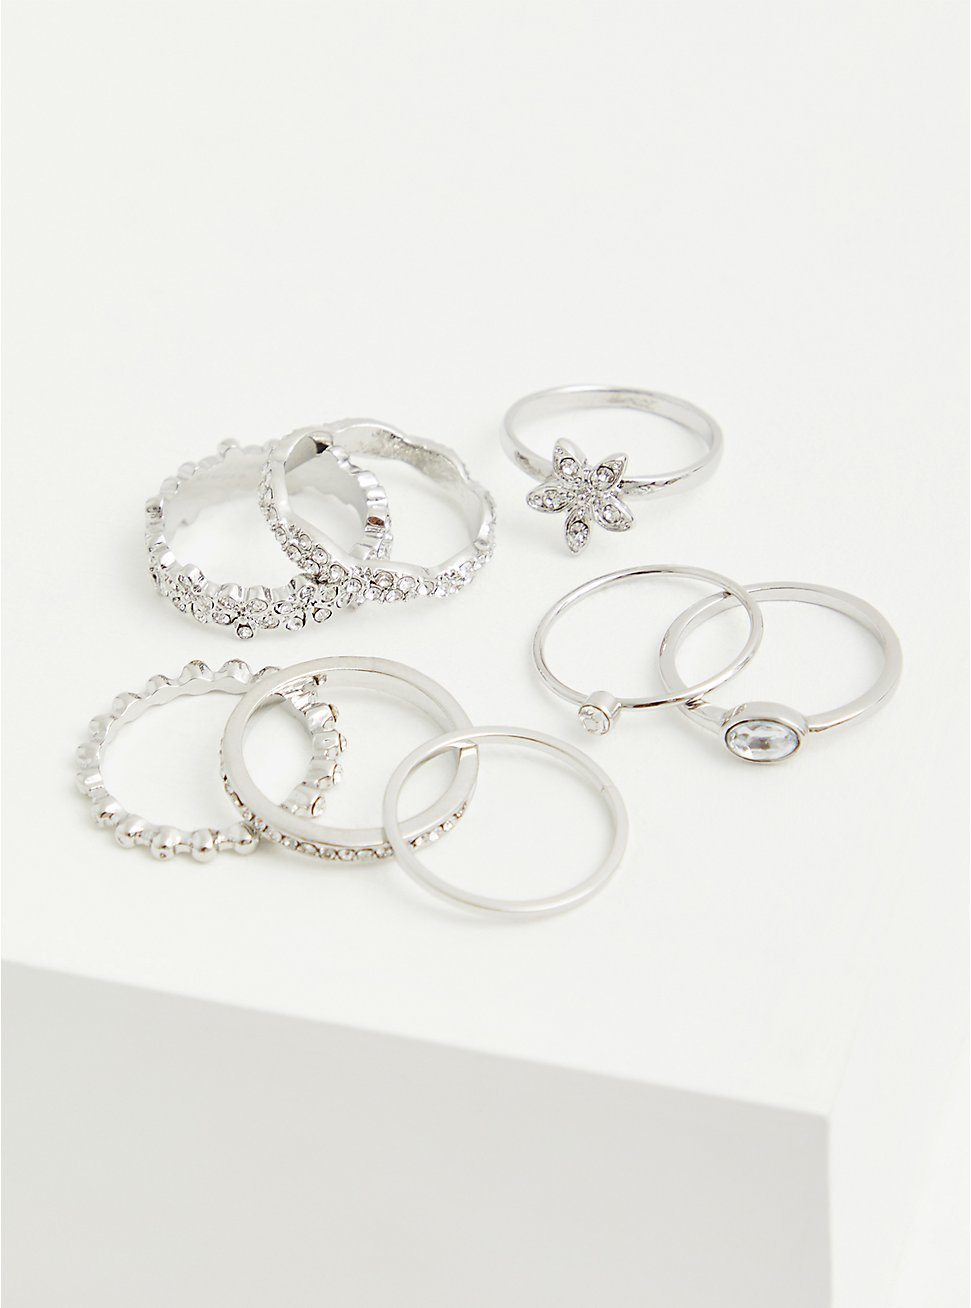 Plus Size Silver-Tone Pave Floral Ring Set - Set of 8, SILVER, hi-res